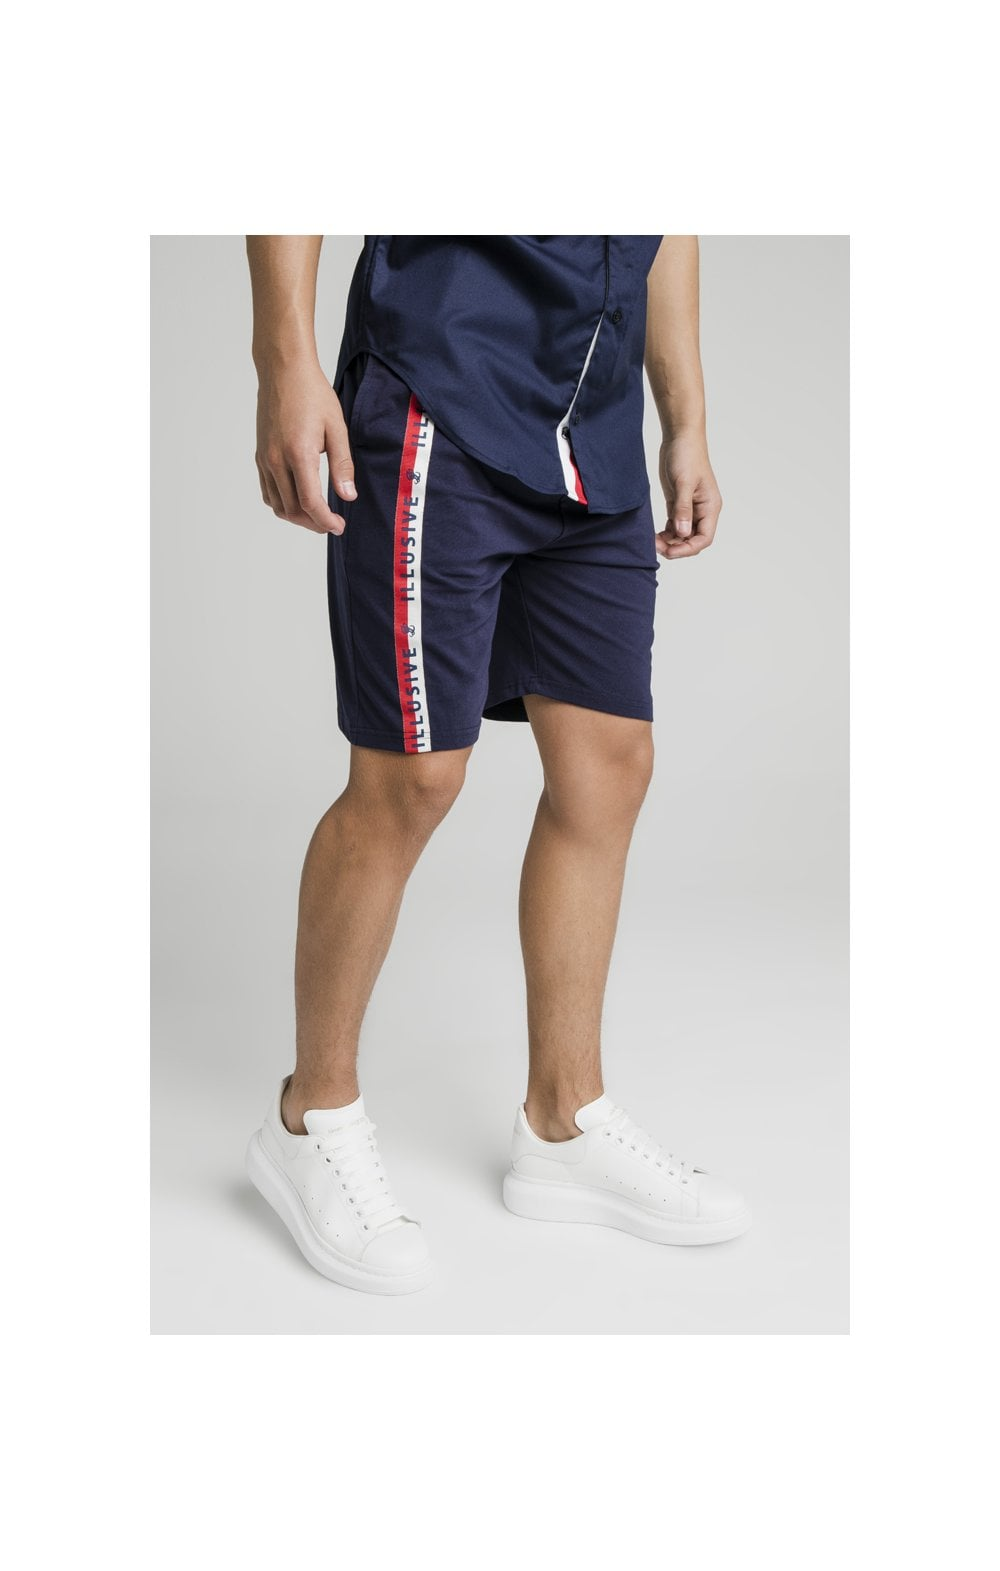 Illusive London Side Tape Jersey Shorts - Navy (1)